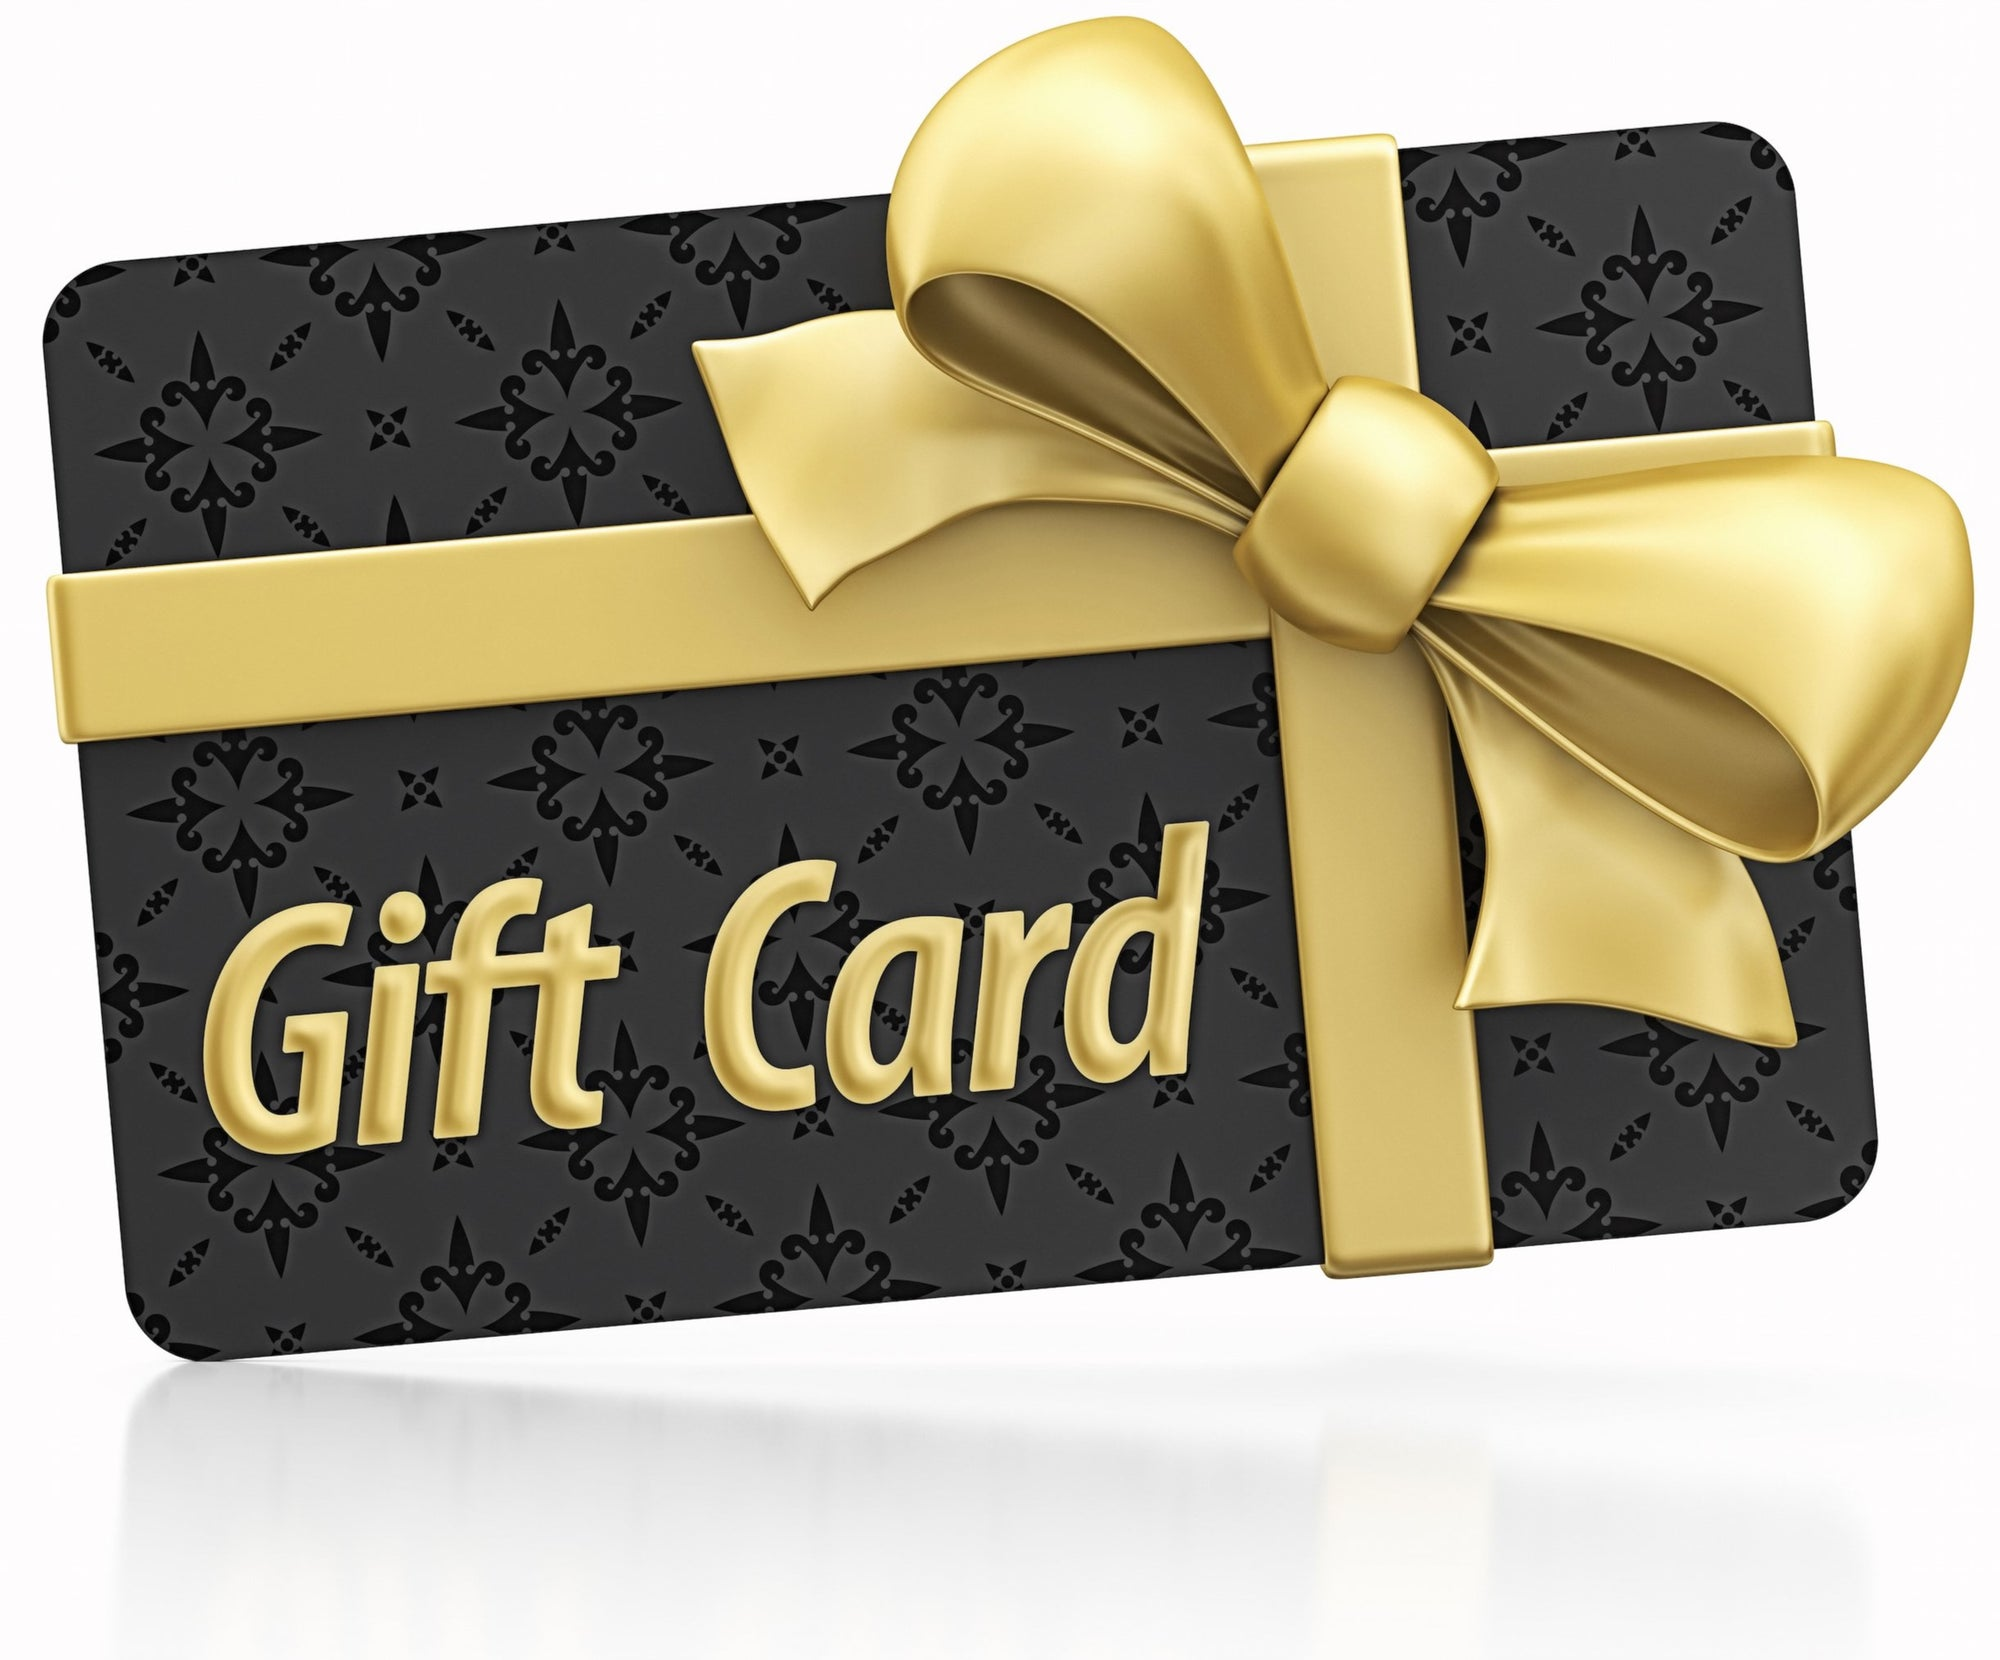 D.T.S.M. Gift Card